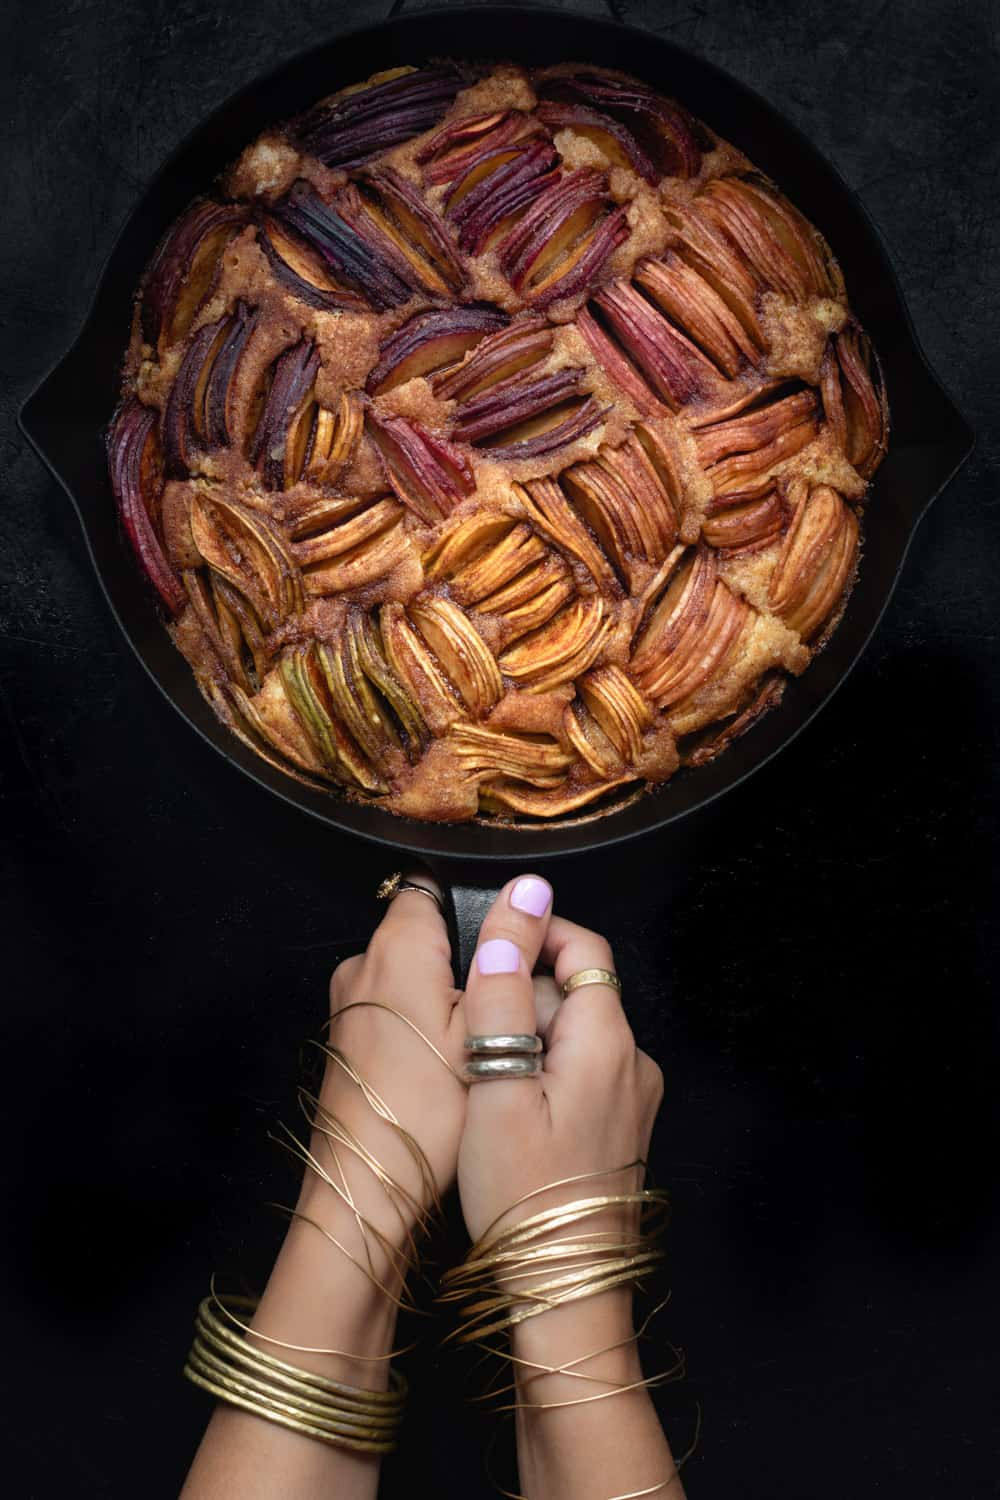 Daniela Gerson holding the finished apple cake; overhead shot on a black background.